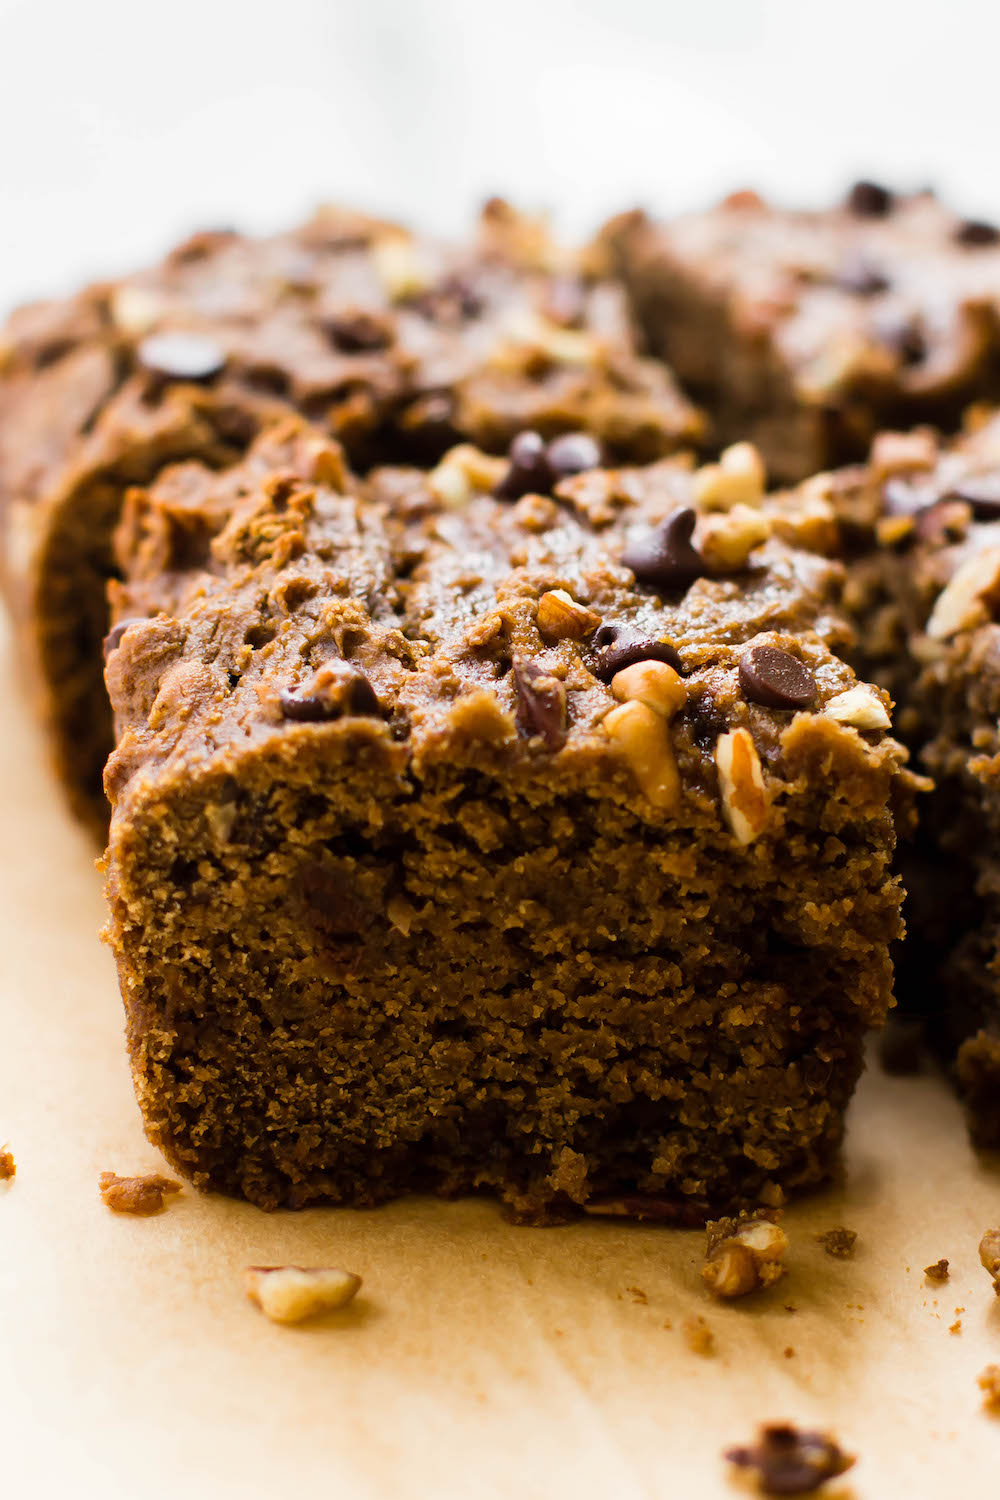 Banana Flour Chocolate Chip Cake {vegan & grain-free}